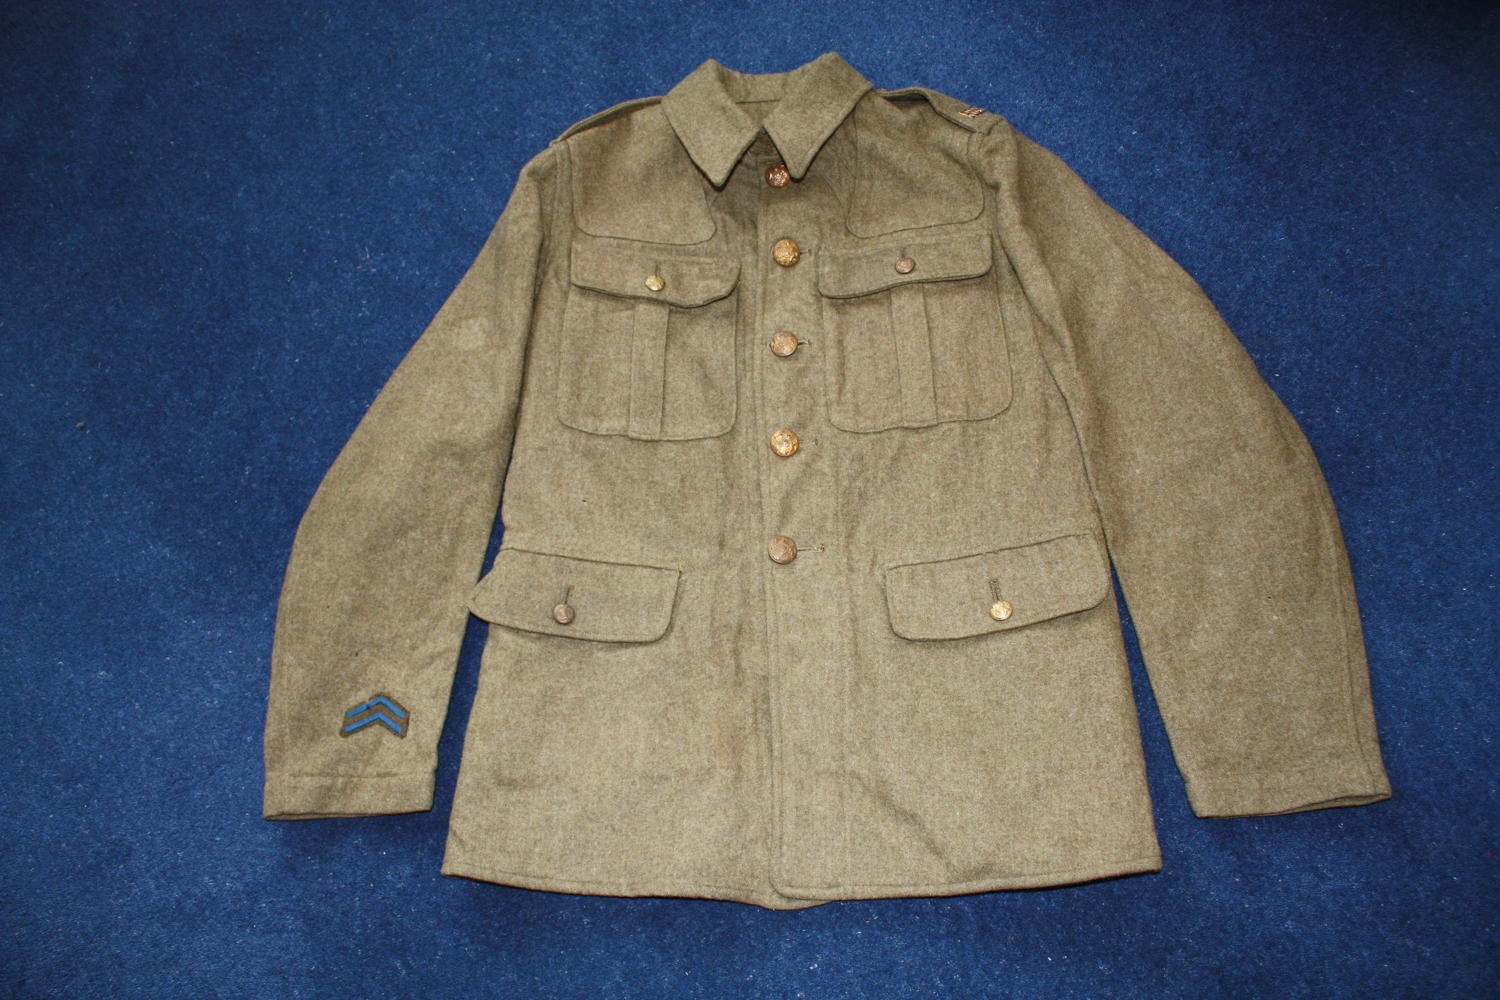 WW1 BRITISH OTHER RANKS TUNIC TO THE ARMY ORDNANCE CORPS AOC